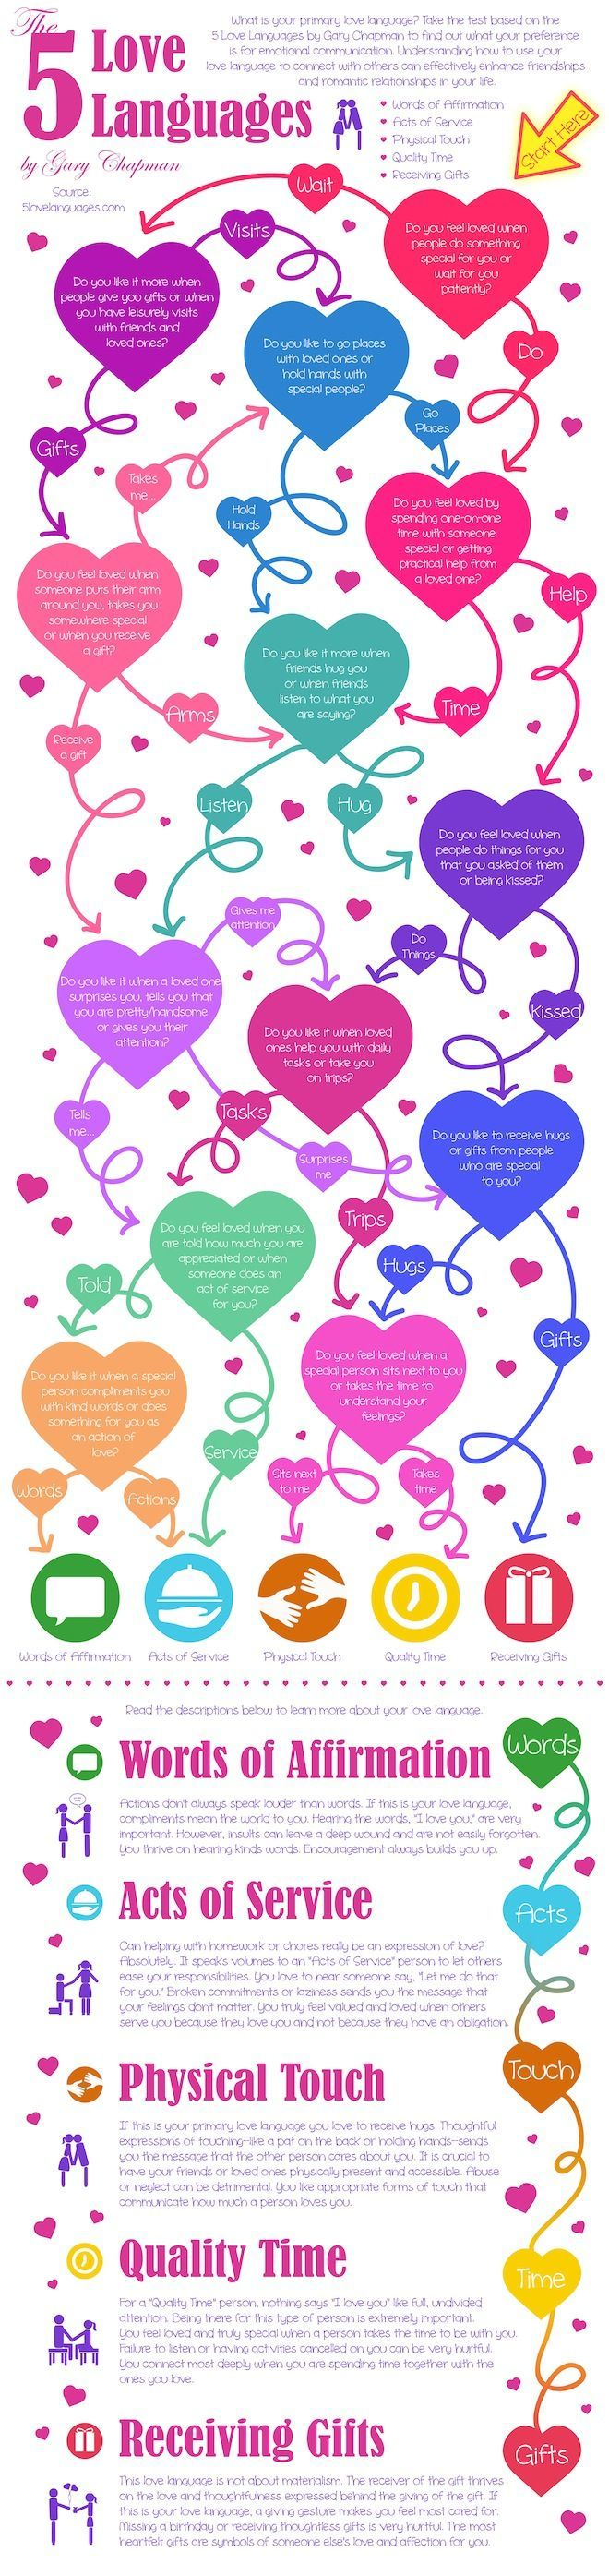 What Are The 5 Love Languages For Couples